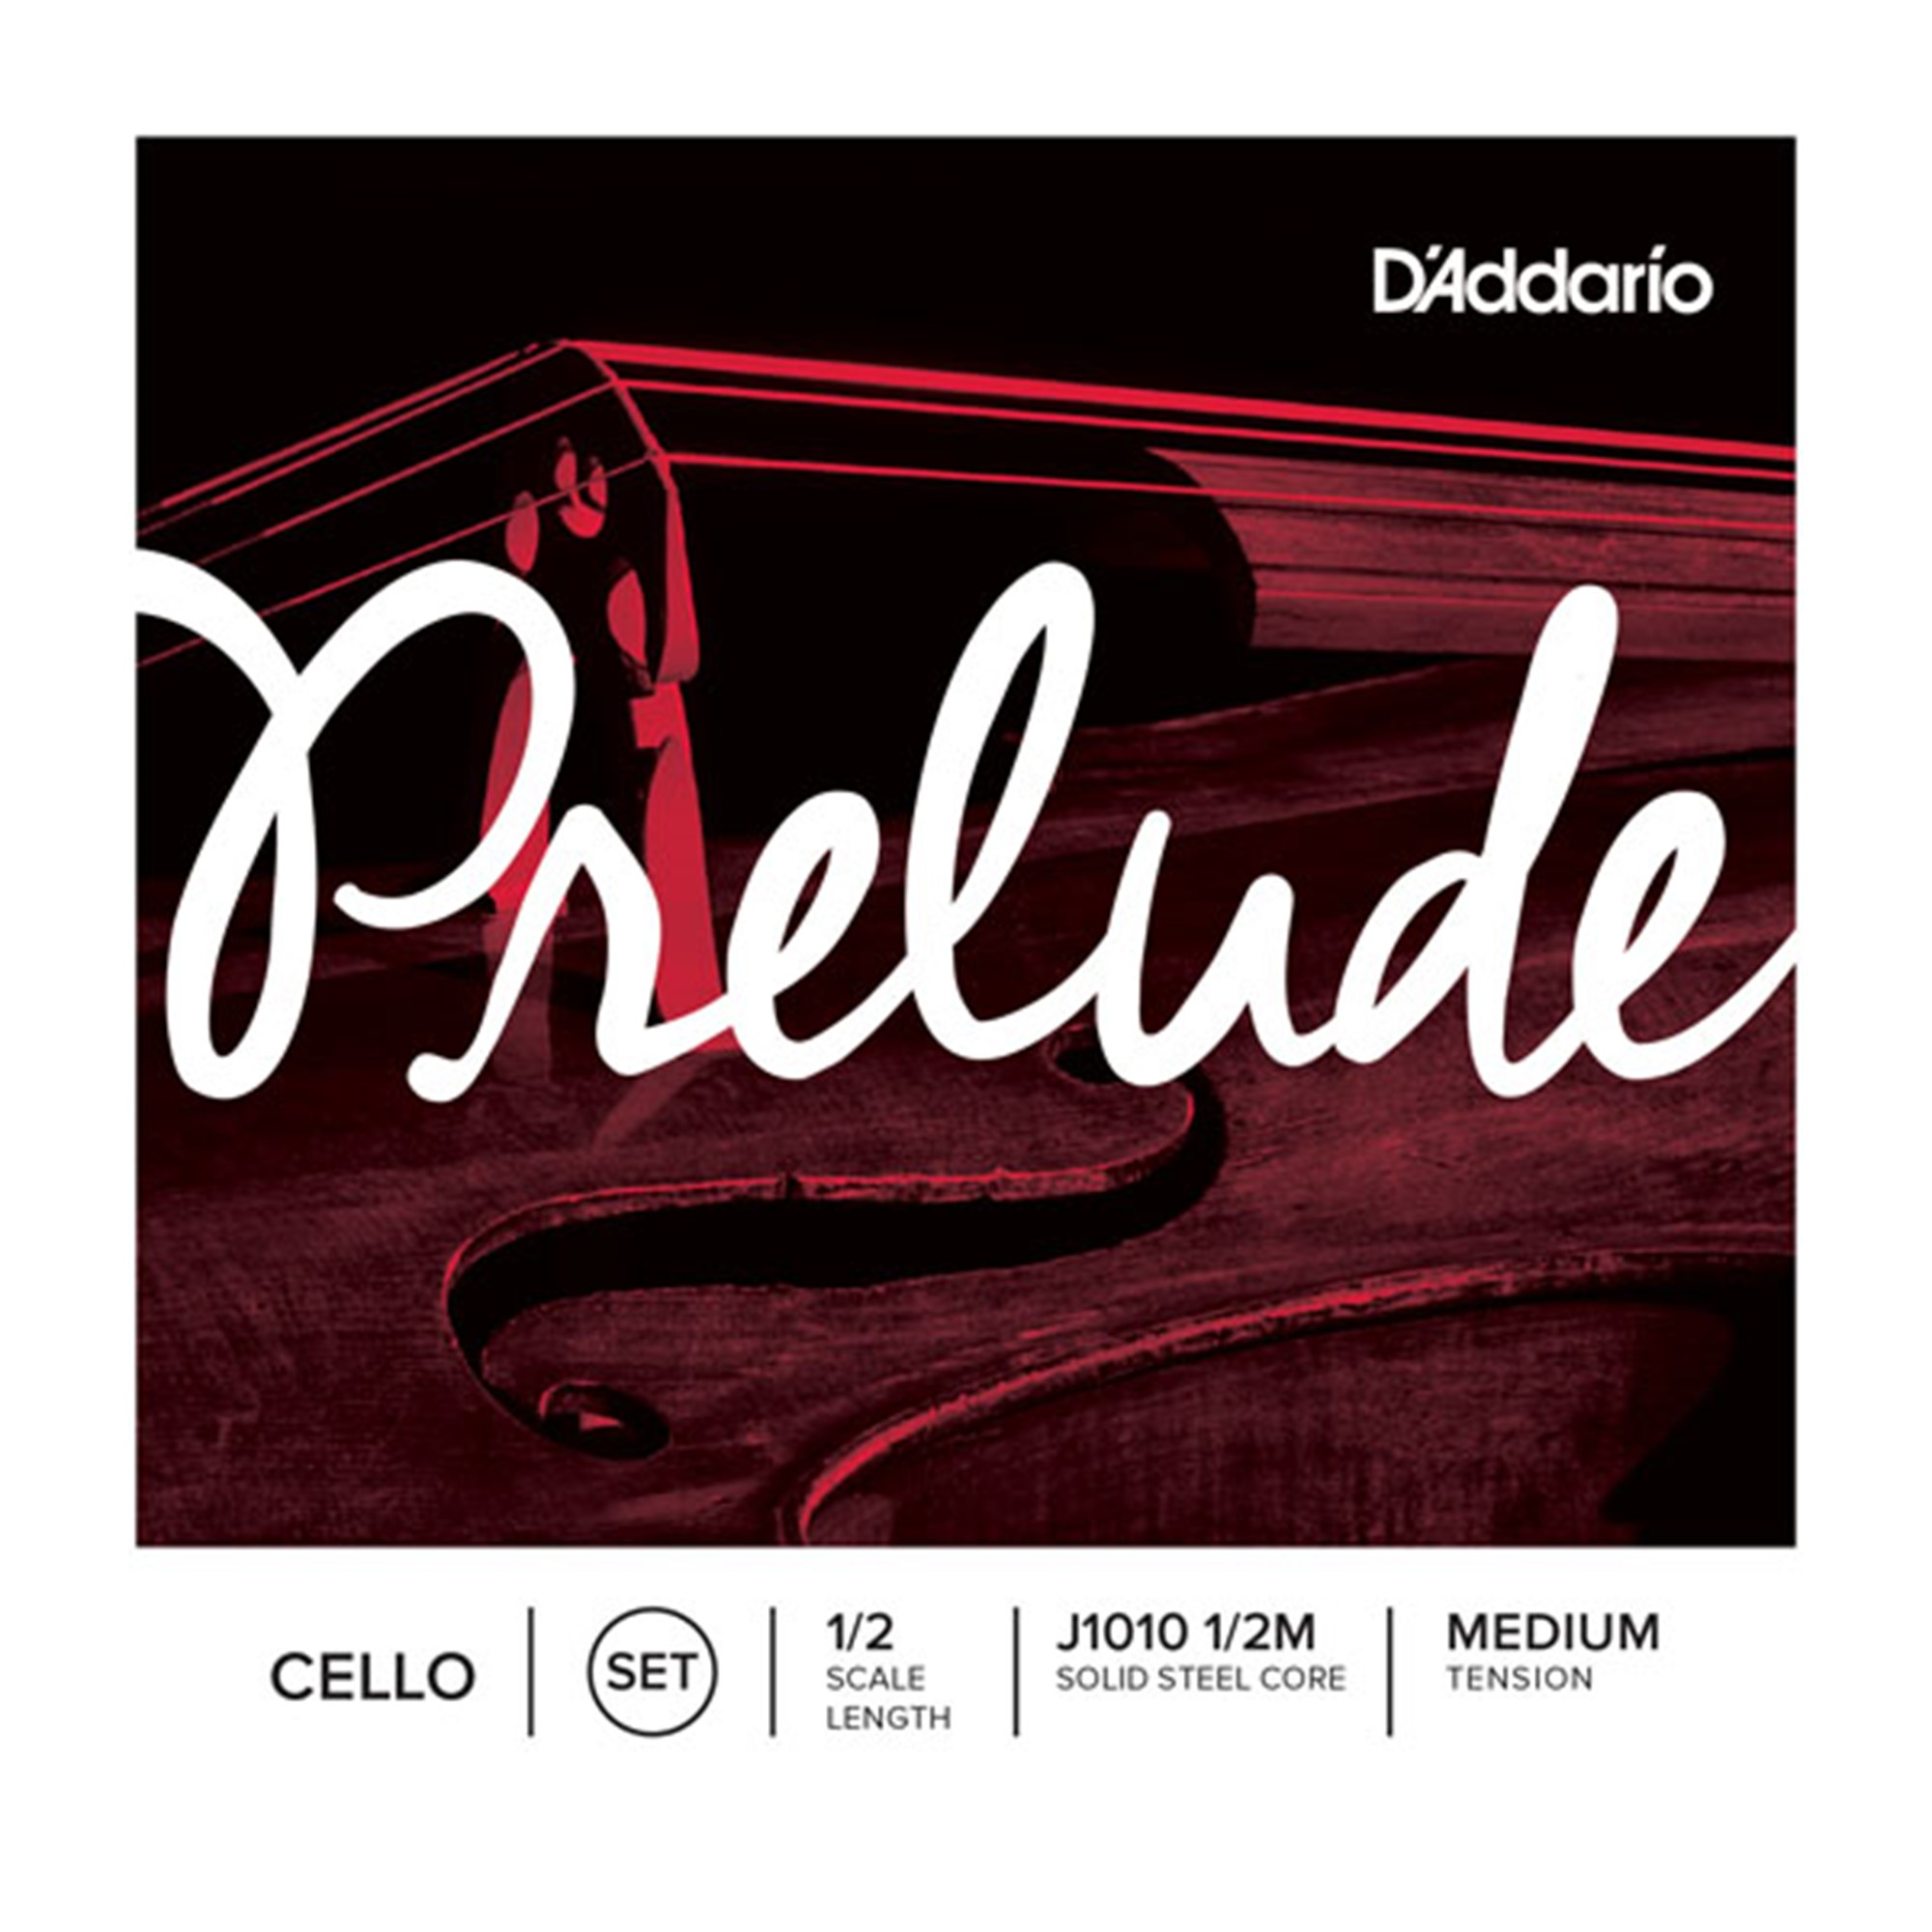 Prelude Cello Set.jpg